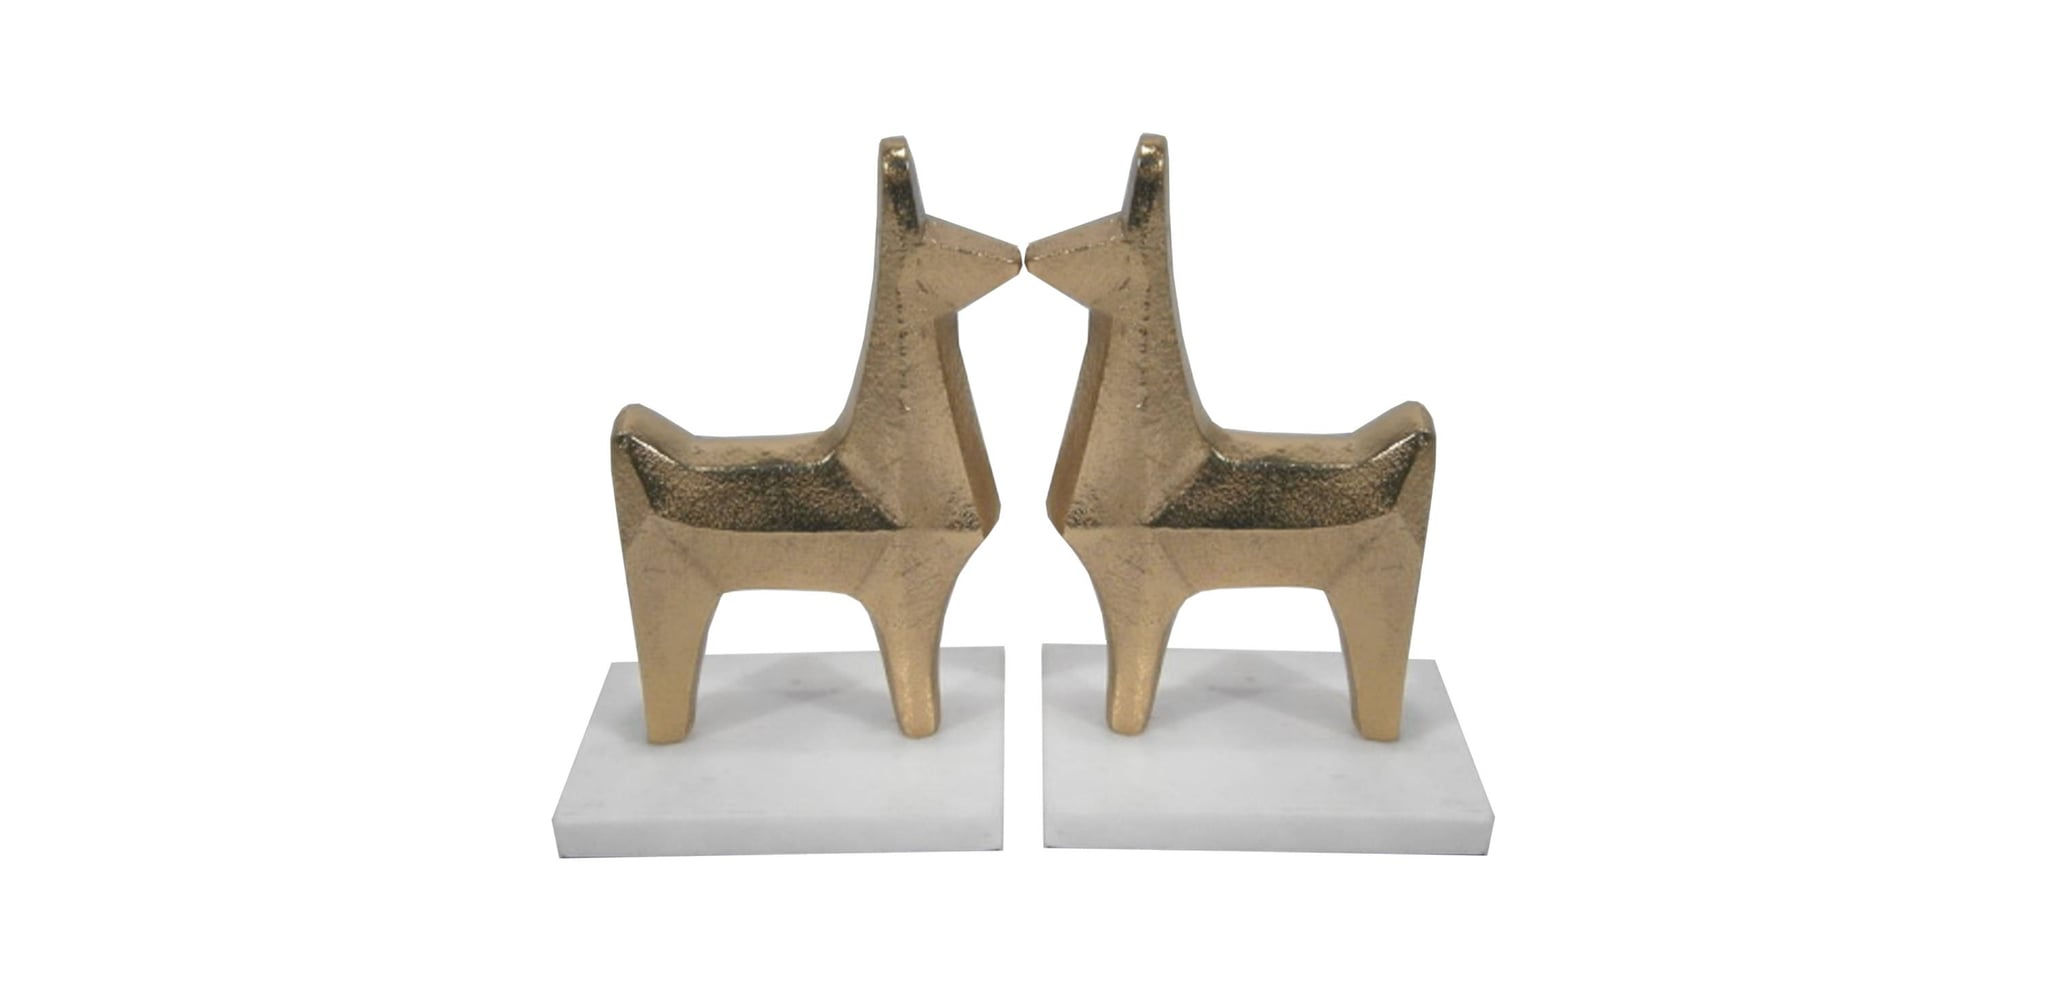 Llama Bookends 20 16 Decor Gifts From Target Perfect